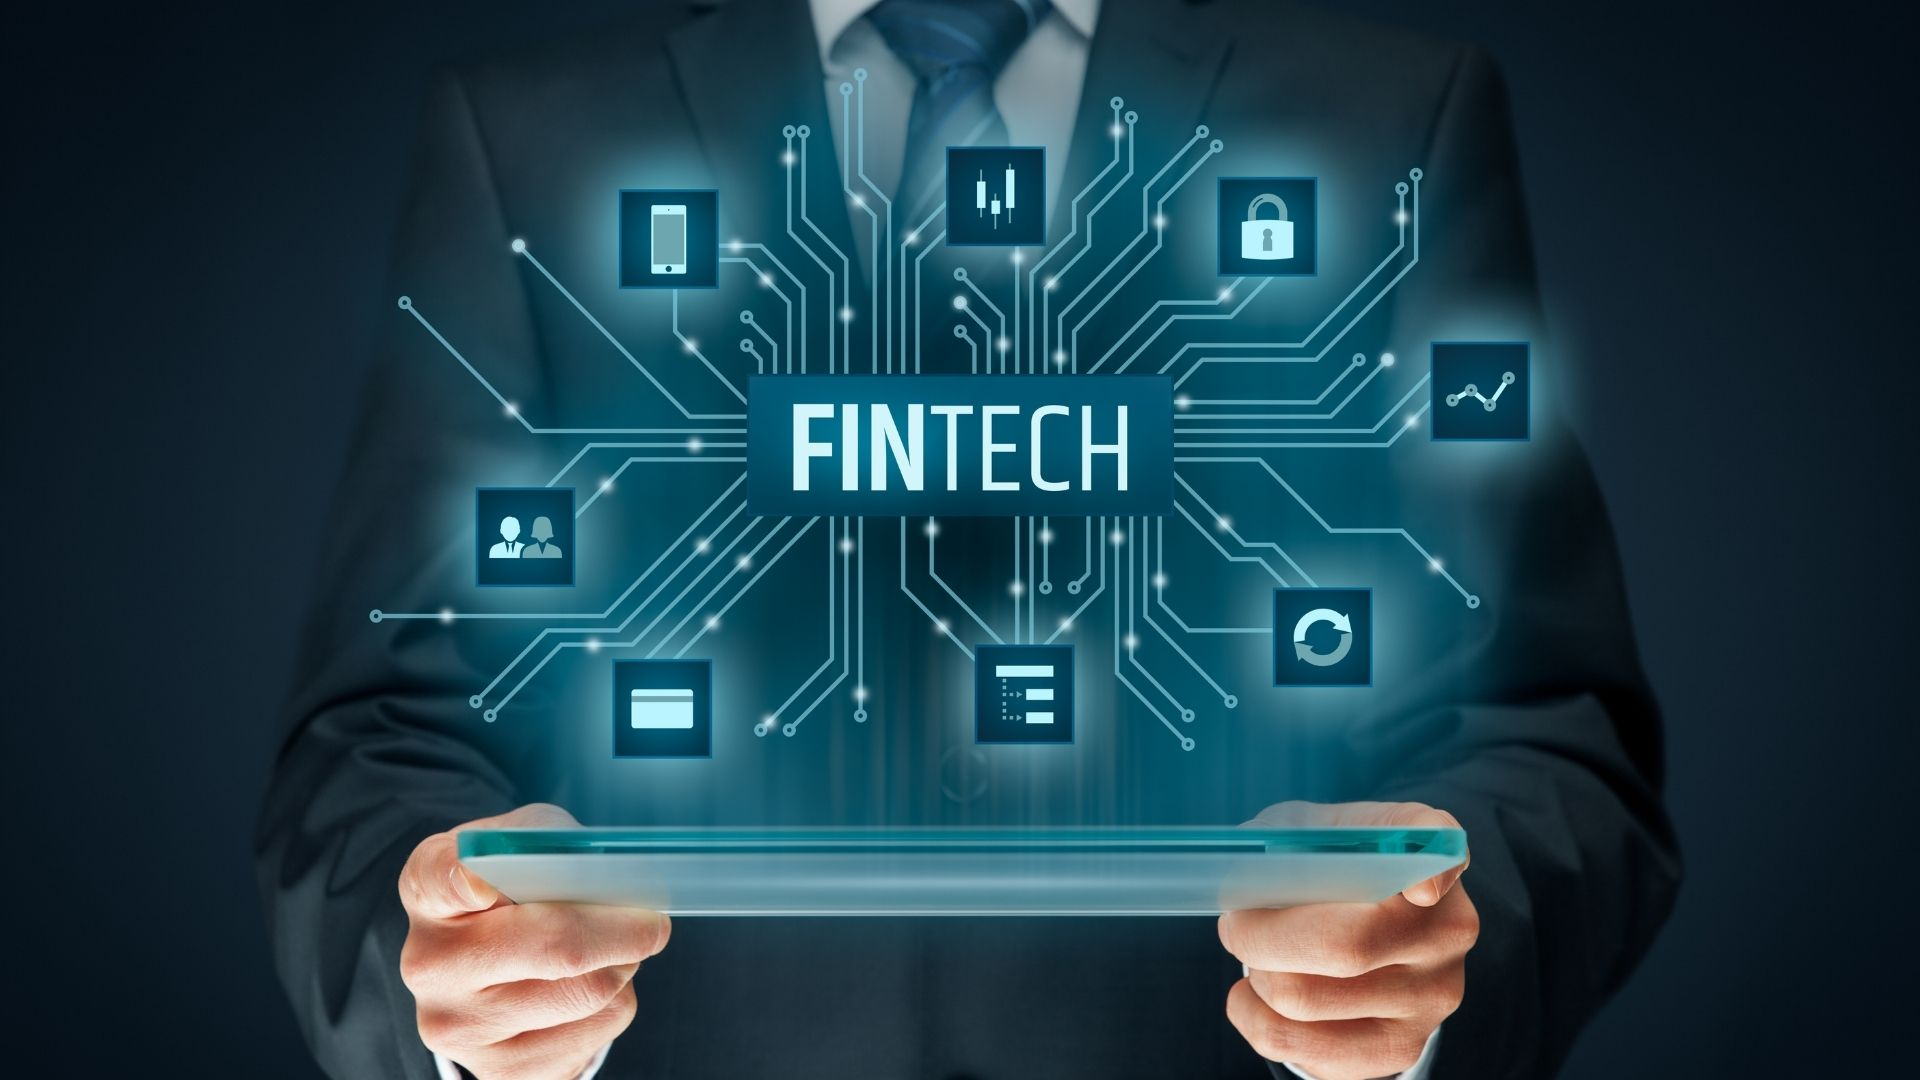 Tackling Covid-19 and Brexit - fintech innovation is key 41